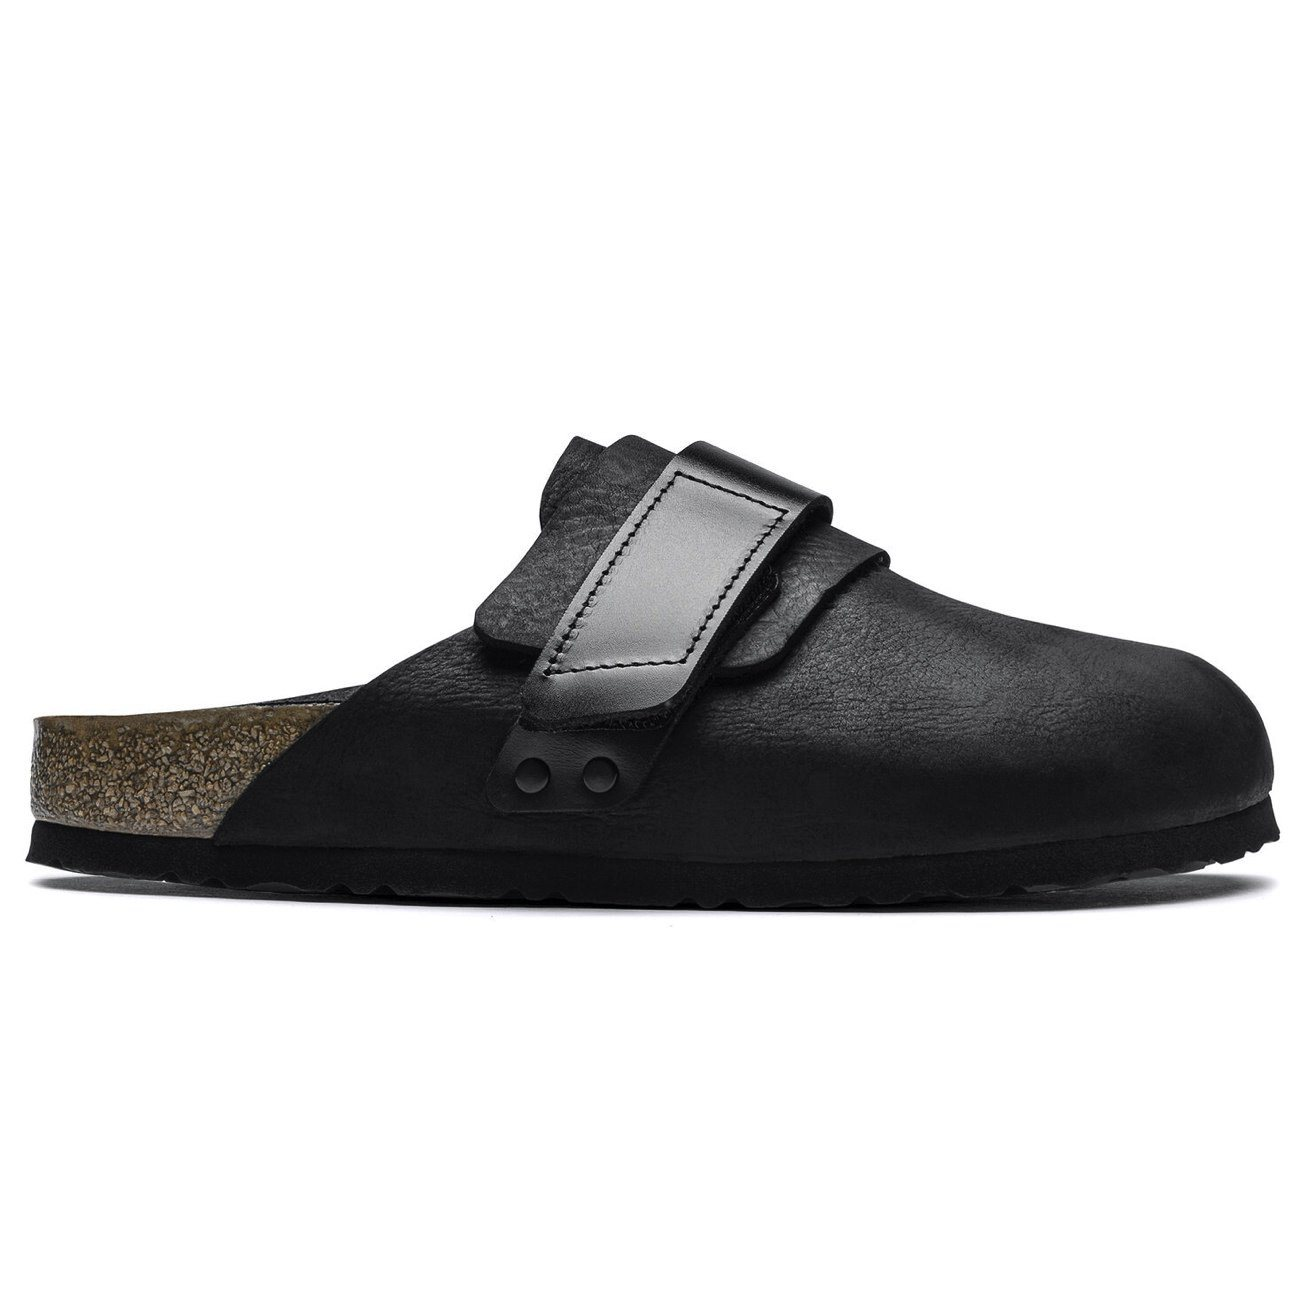 Birkenstock Seasonal, Nagoya, Nubuck Leather/Birko-Flor, Regular Fit, Black Sandals Birkenstock Seasonal Black 35